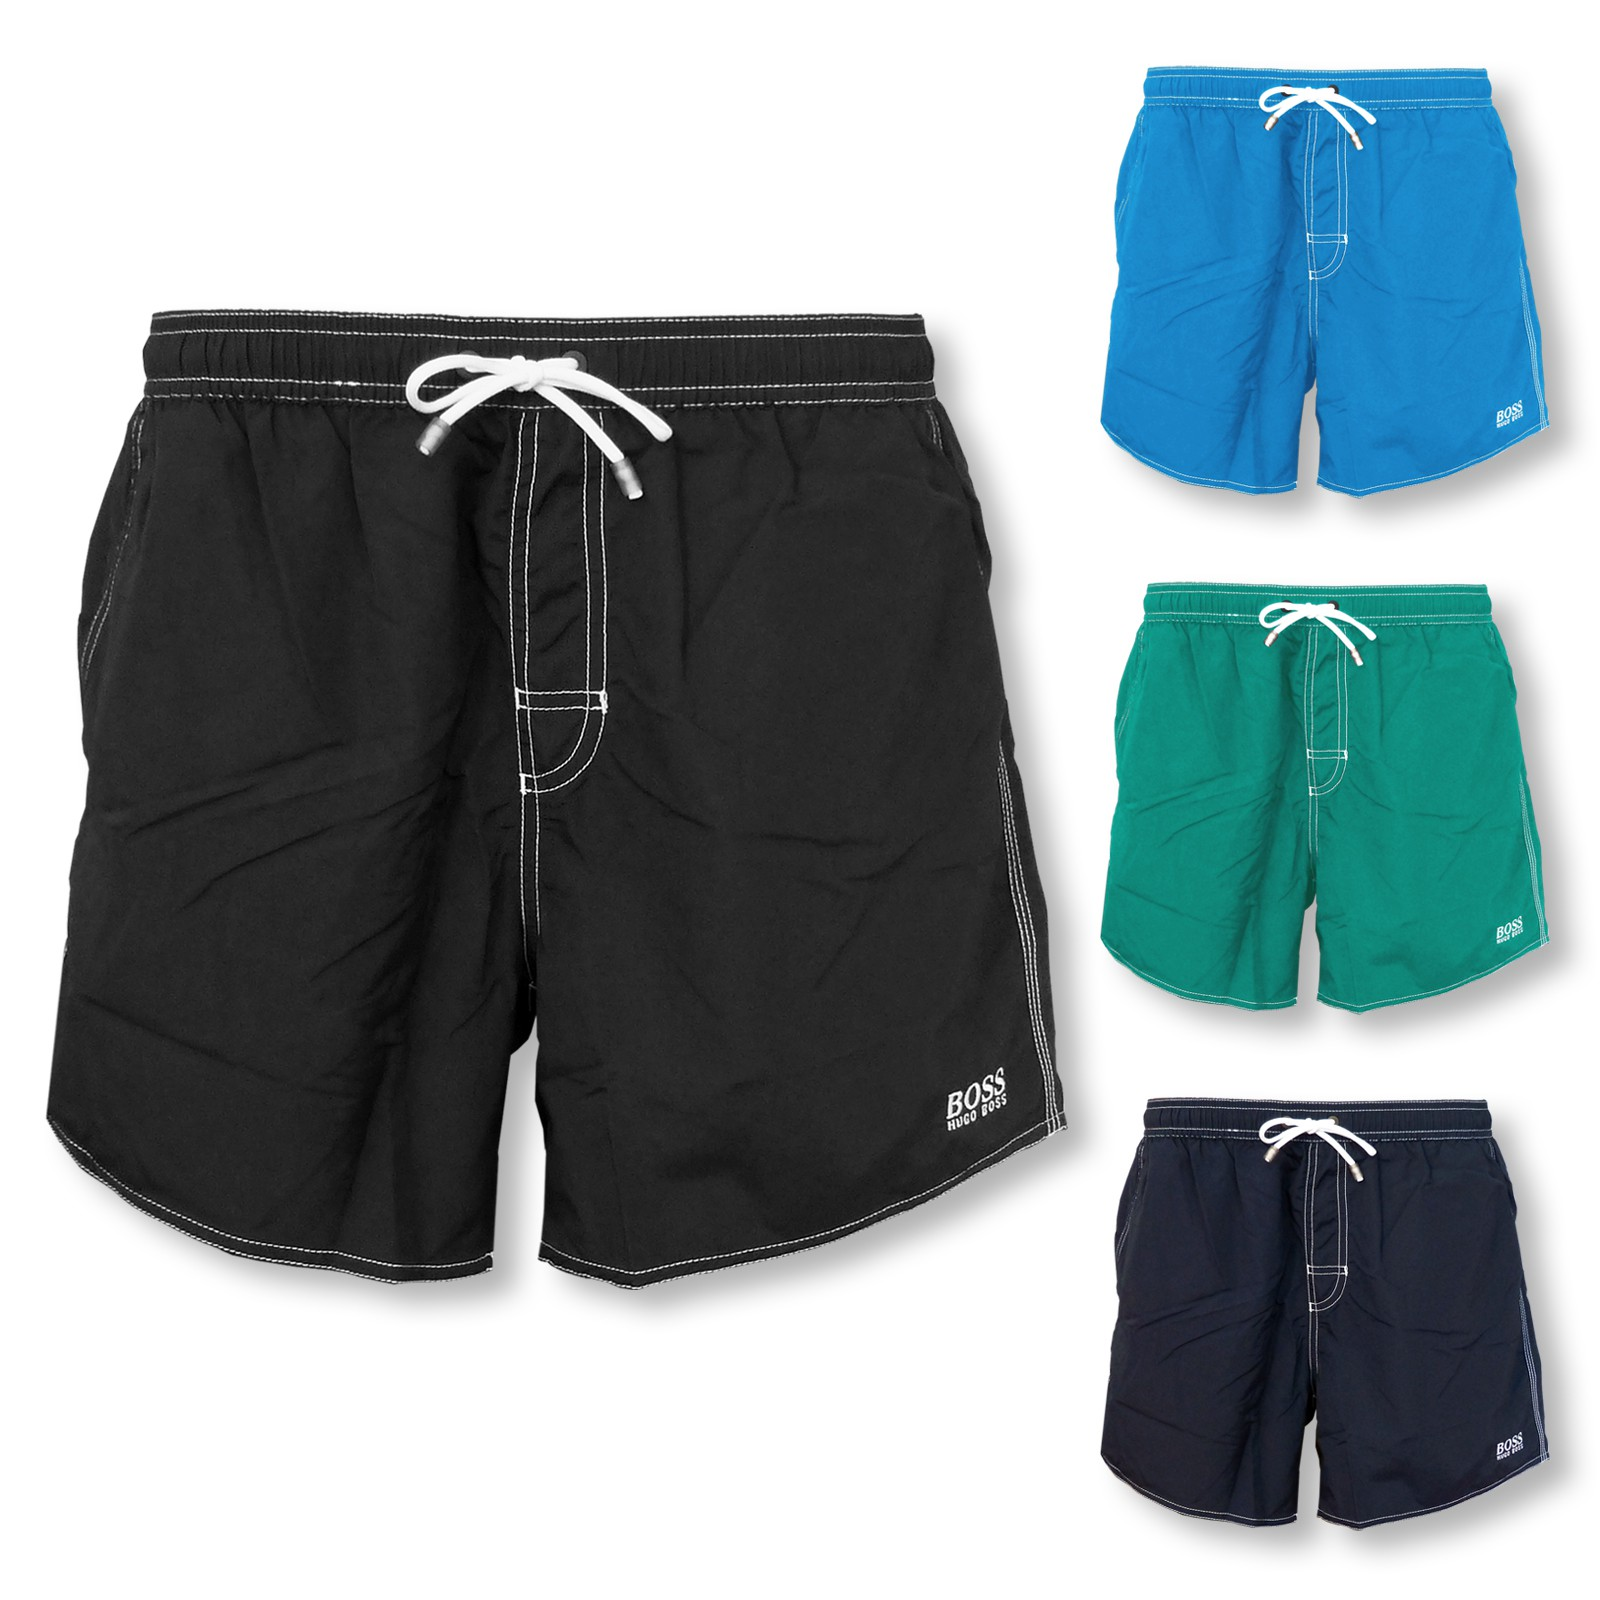 HUGO BOSS Herren Badeshorts Badehose Lobster in pastel blue